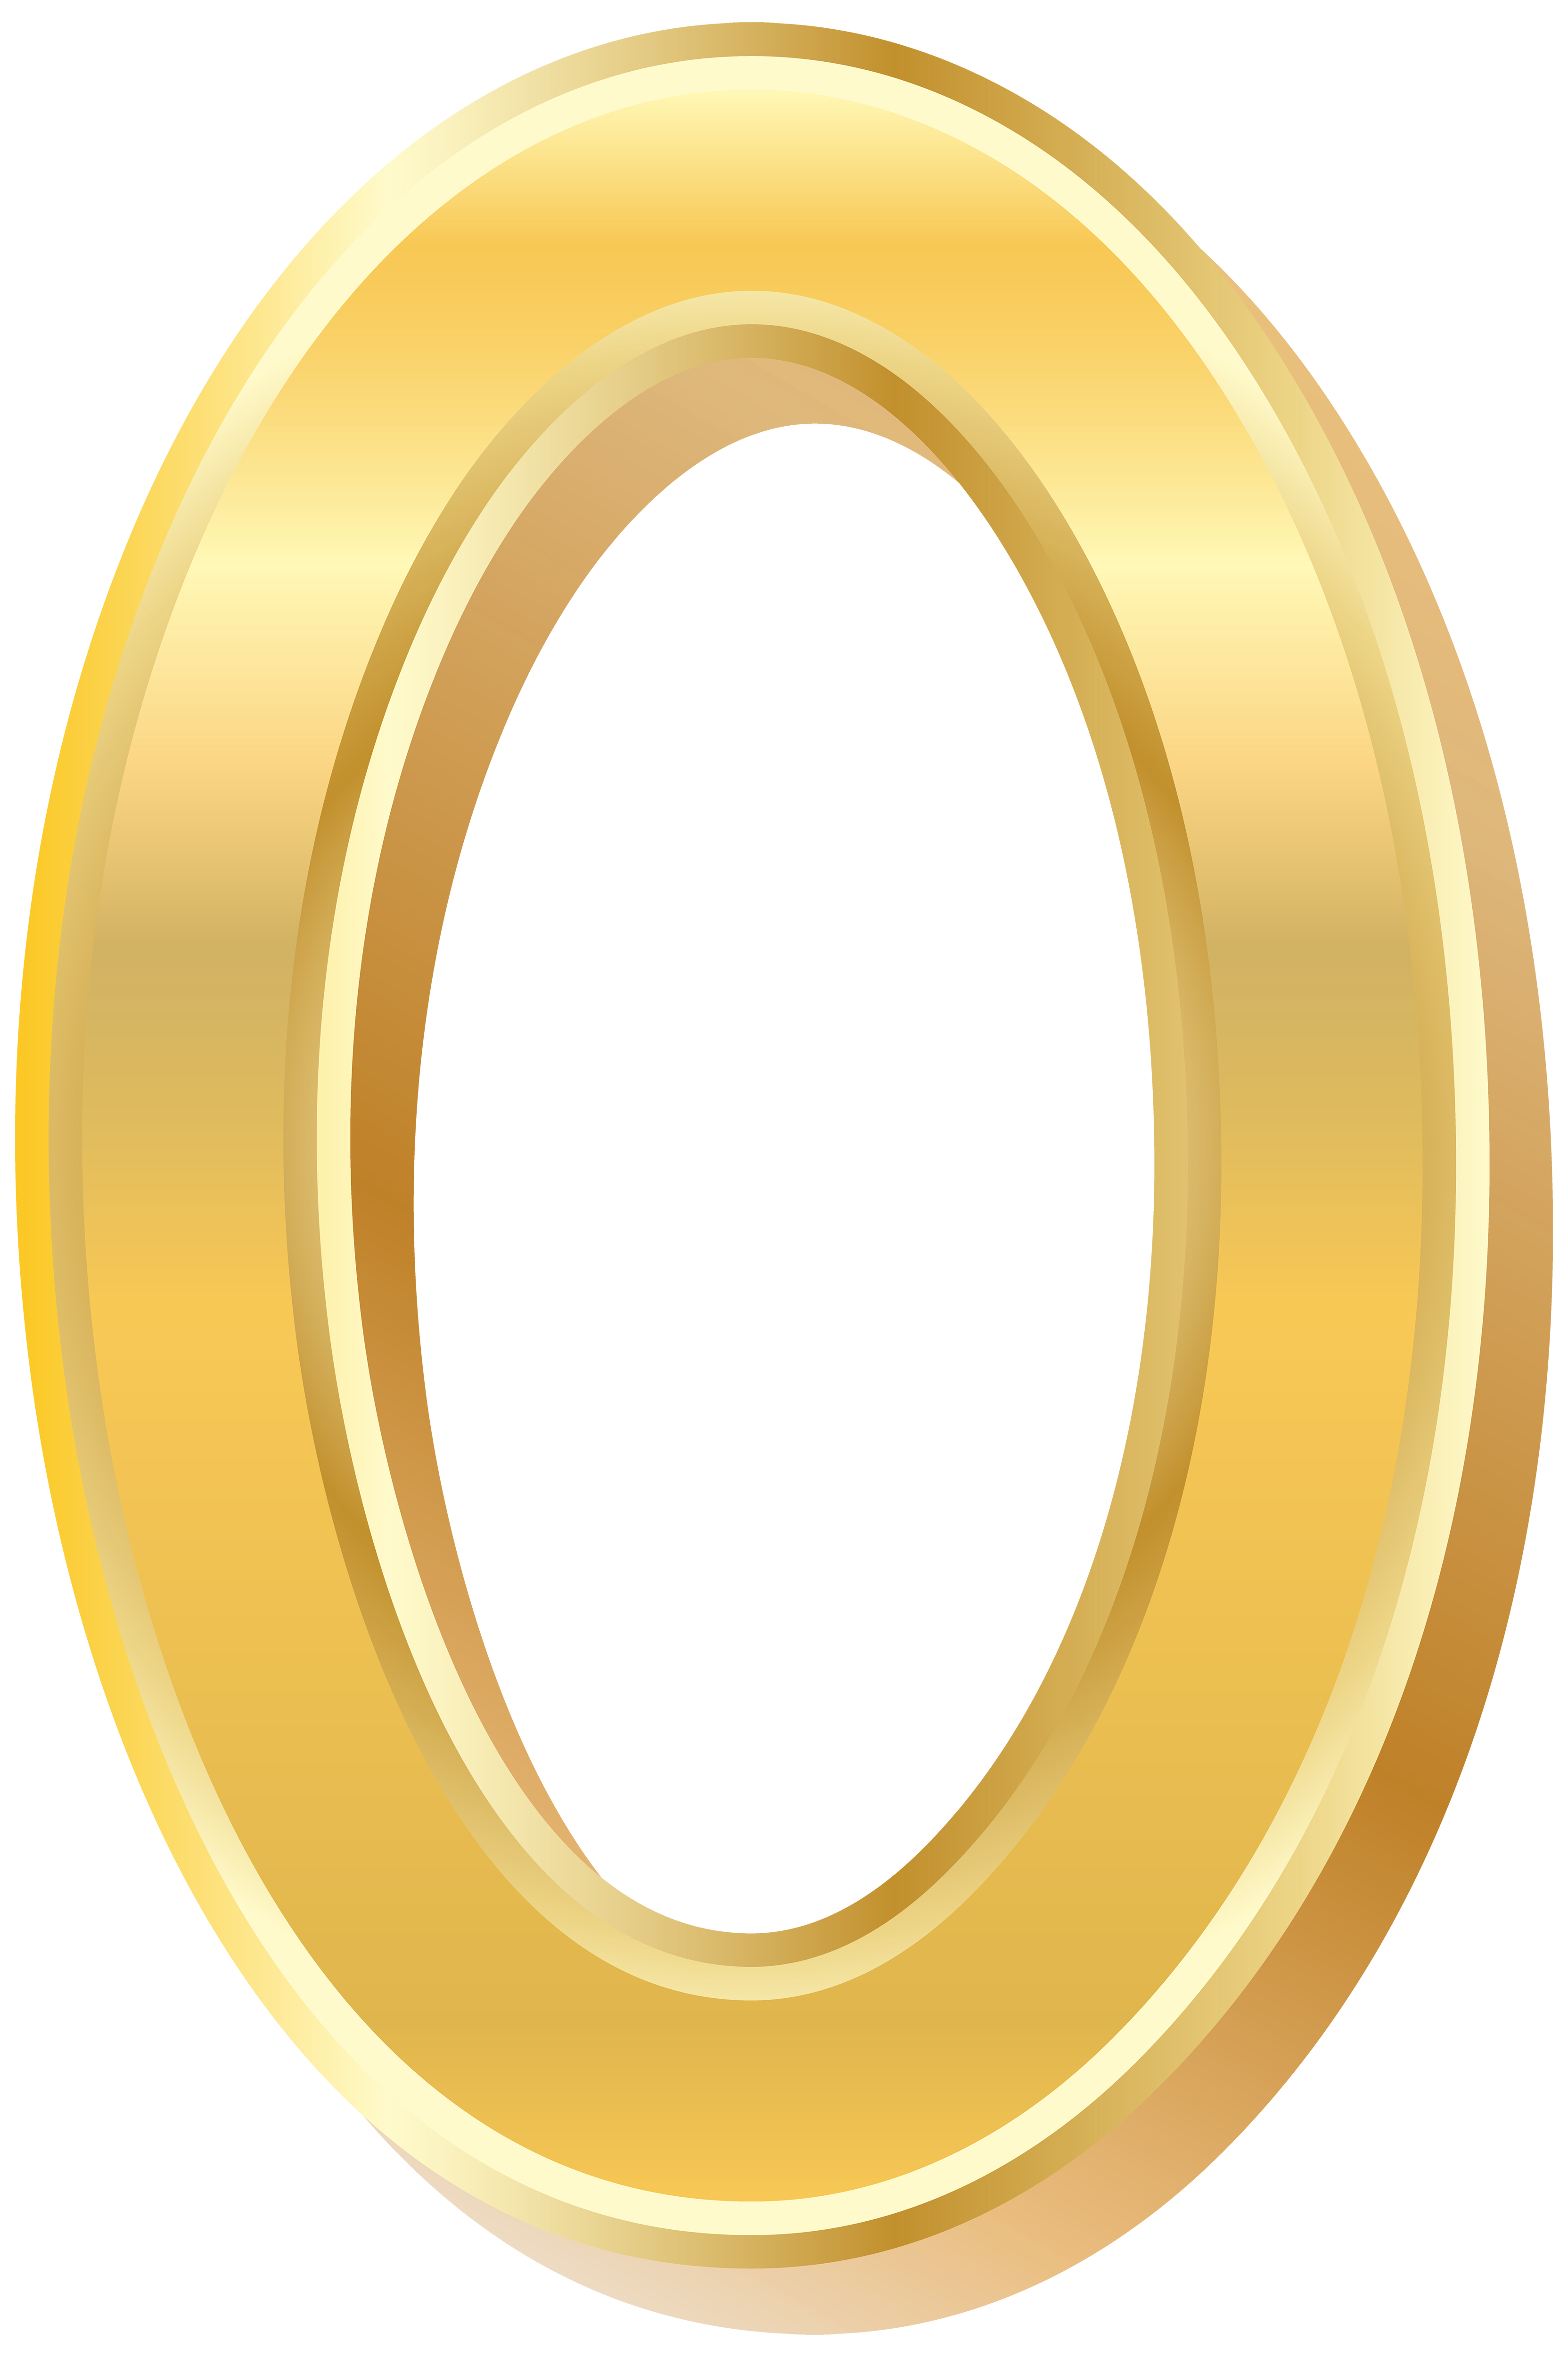 Gold clipart clip art. Style number zero png